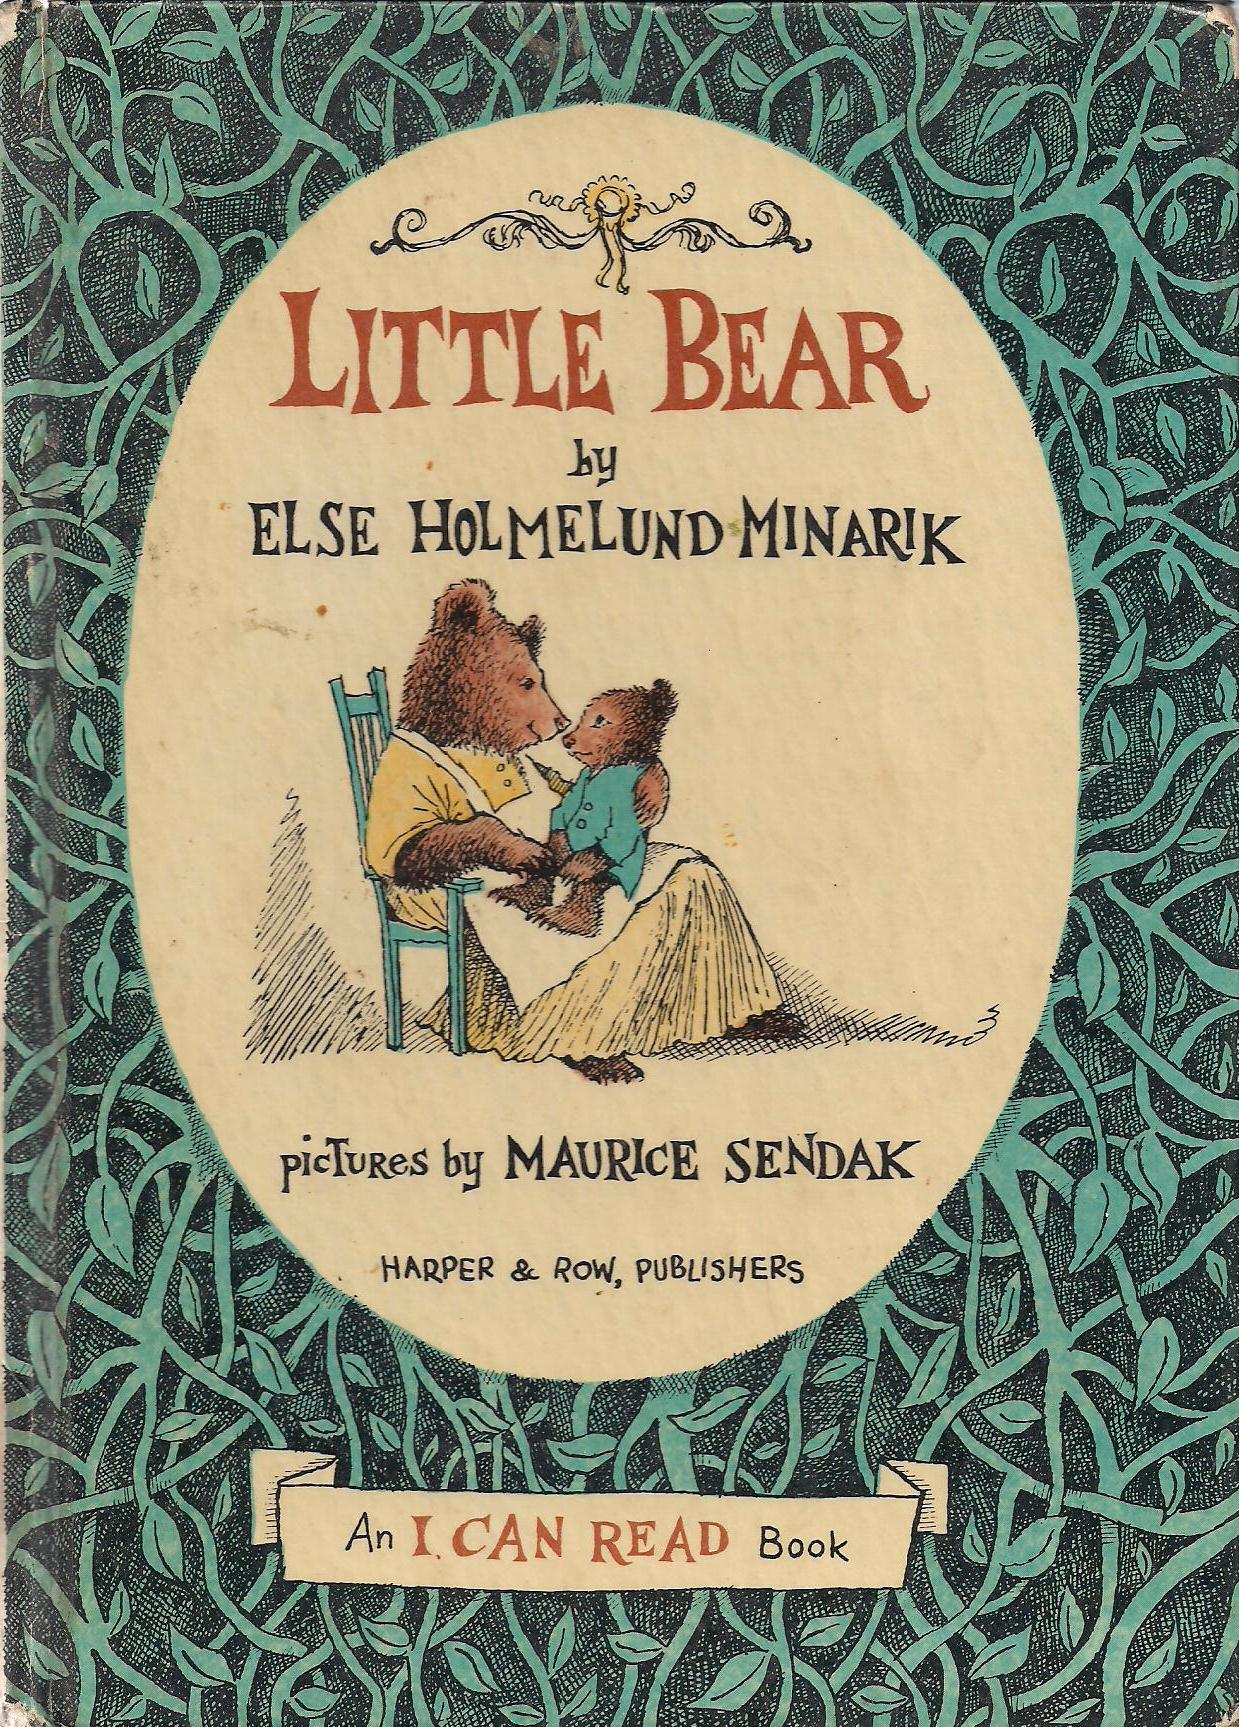 A Year in Books/Day 129: Little Bear* | A Small Press Life